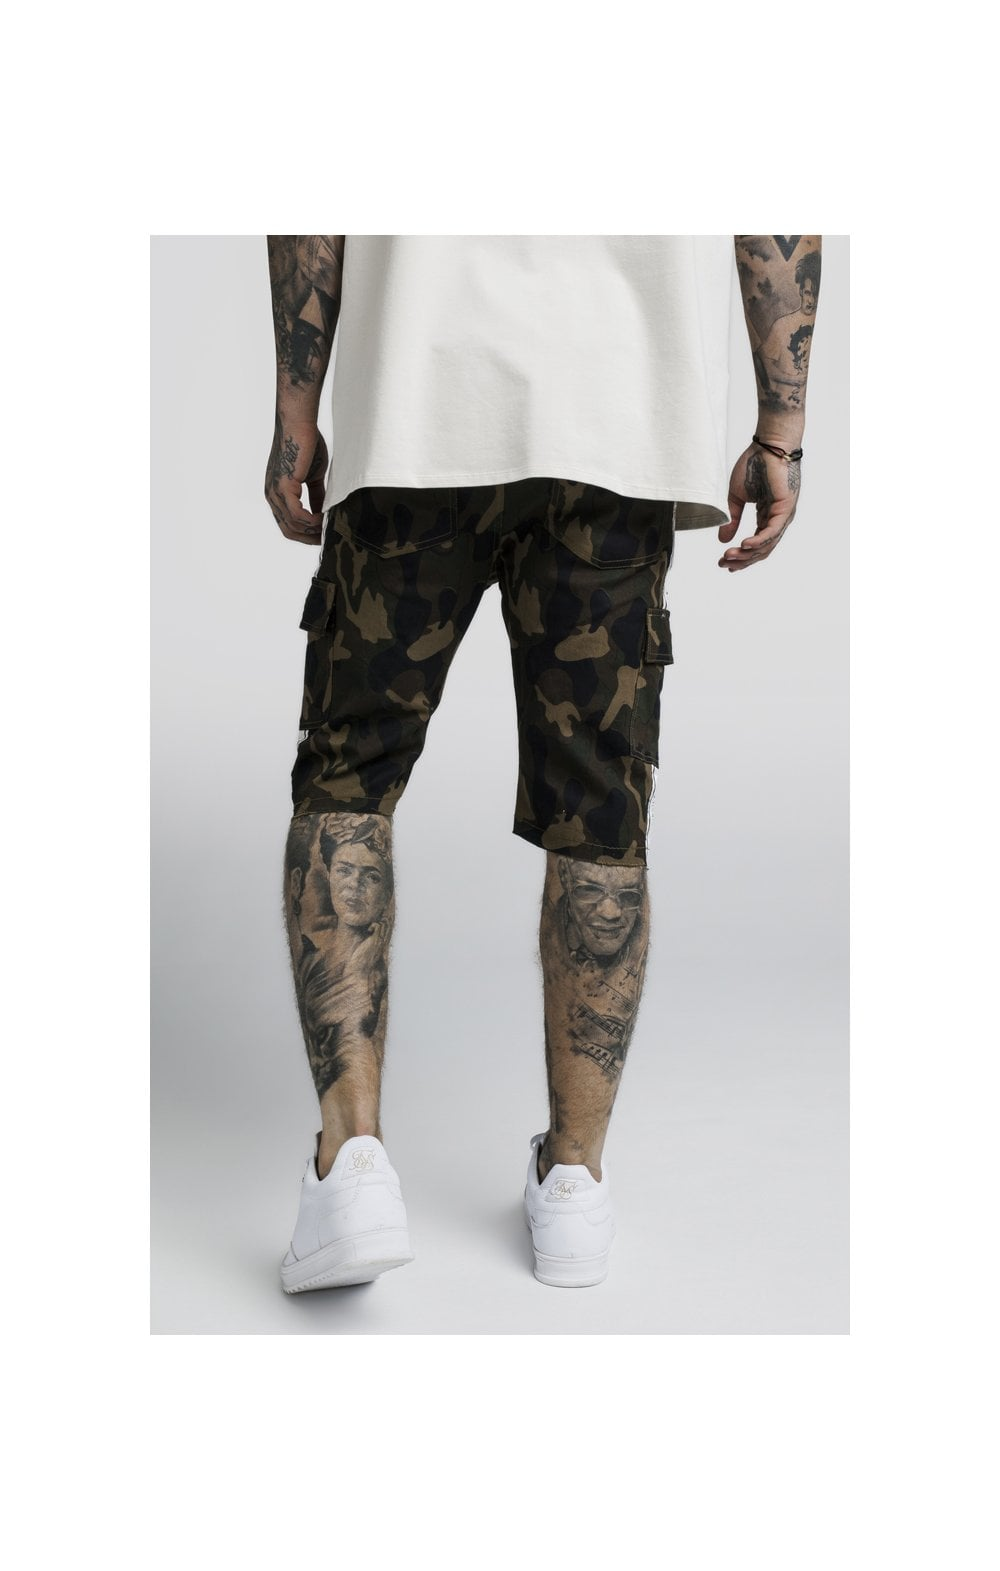 Load image into Gallery viewer, SikSilk Taped Cargo Shorts - Camo (3)